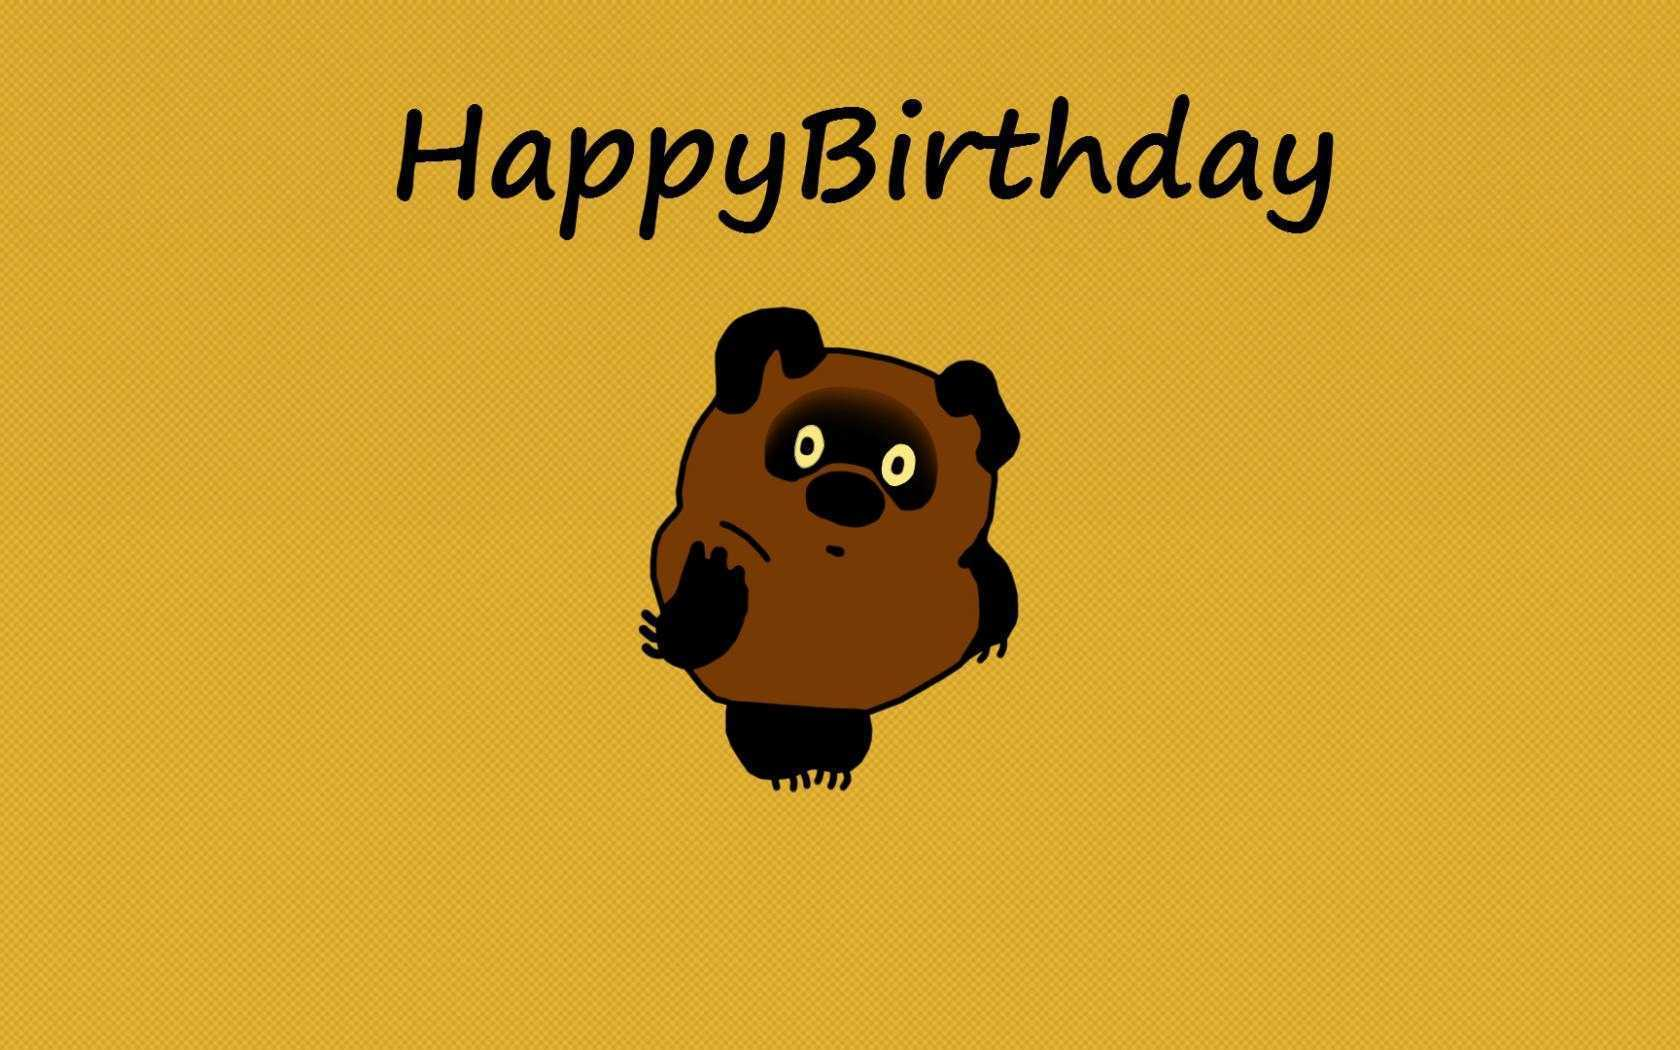 funny happy birthday wallpaper ; weird-happy-birthday-images-best-of-funny-happy-birthday-hd-wallpaper-of-greeting-of-weird-happy-birthday-images